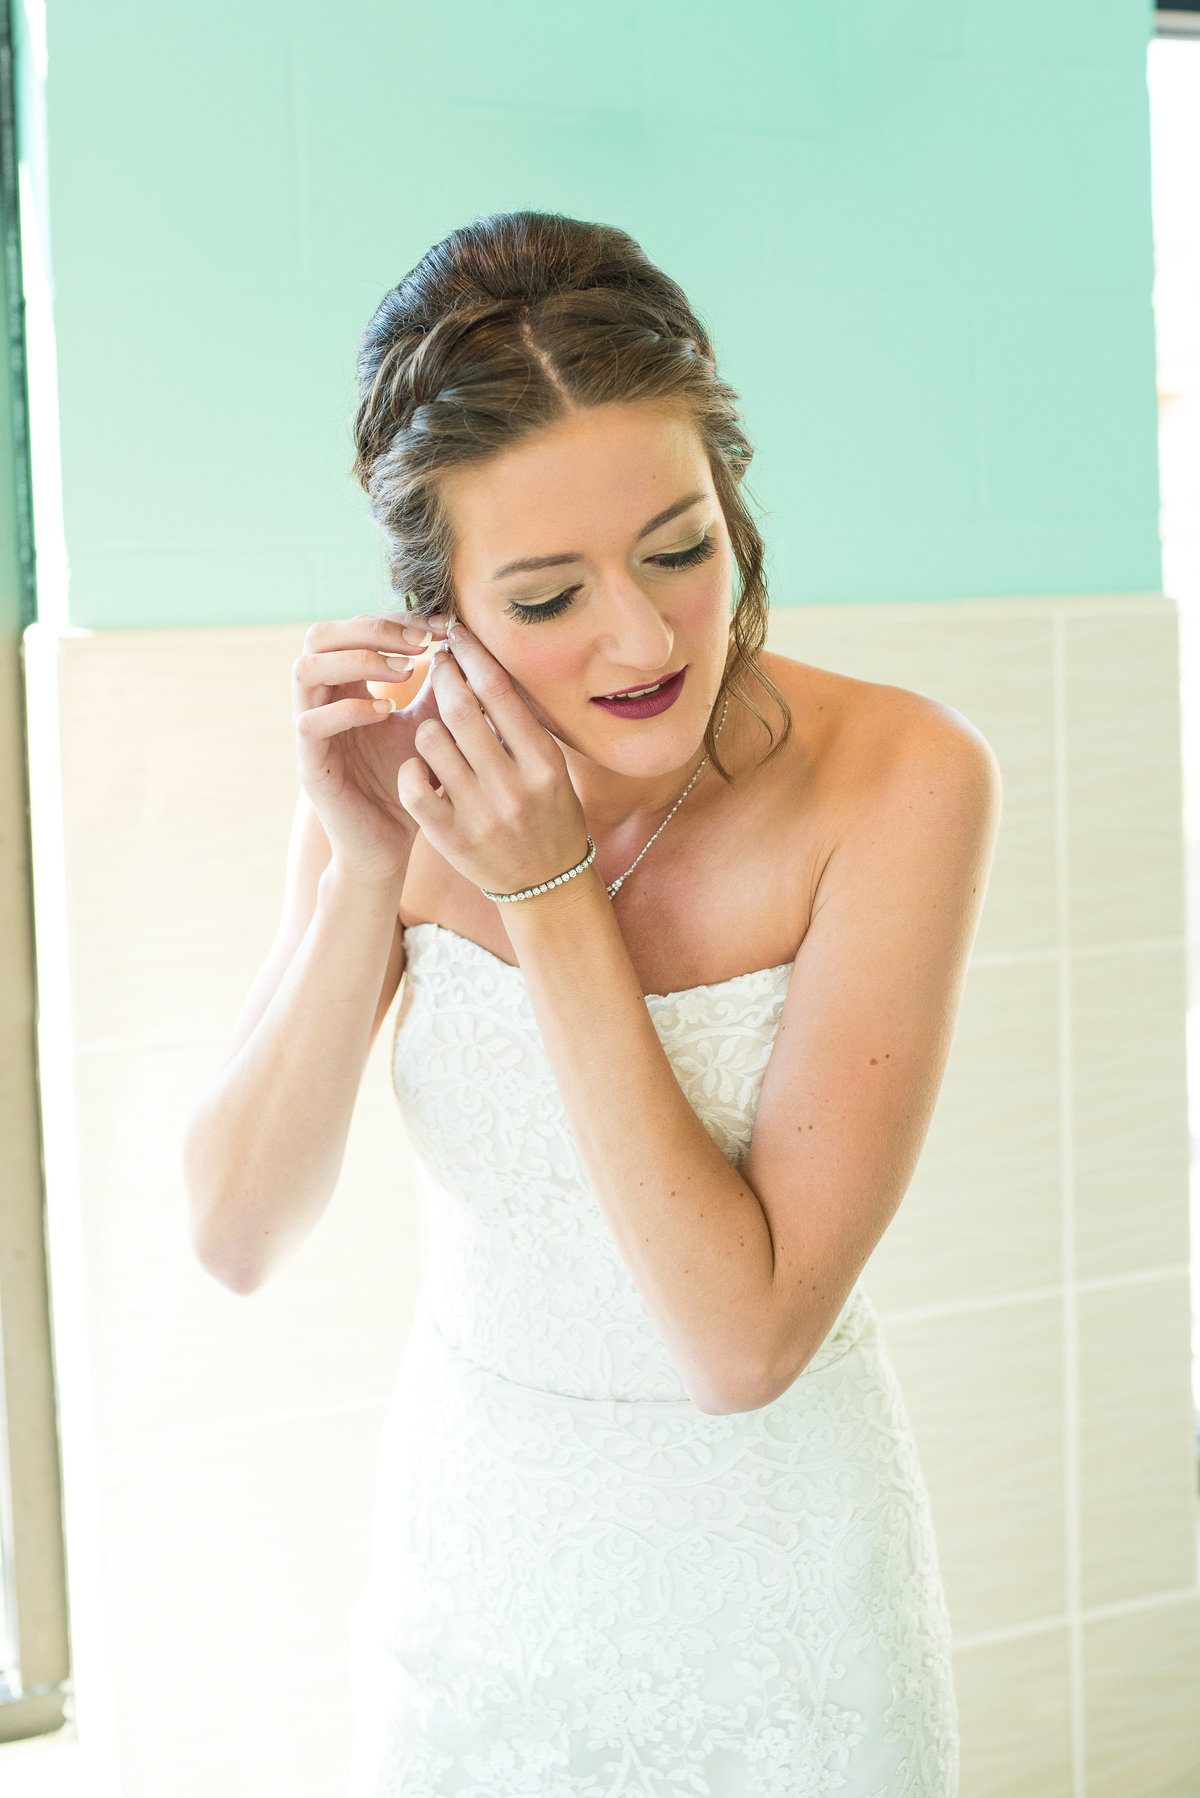 danielle kristine photography-weddings-84